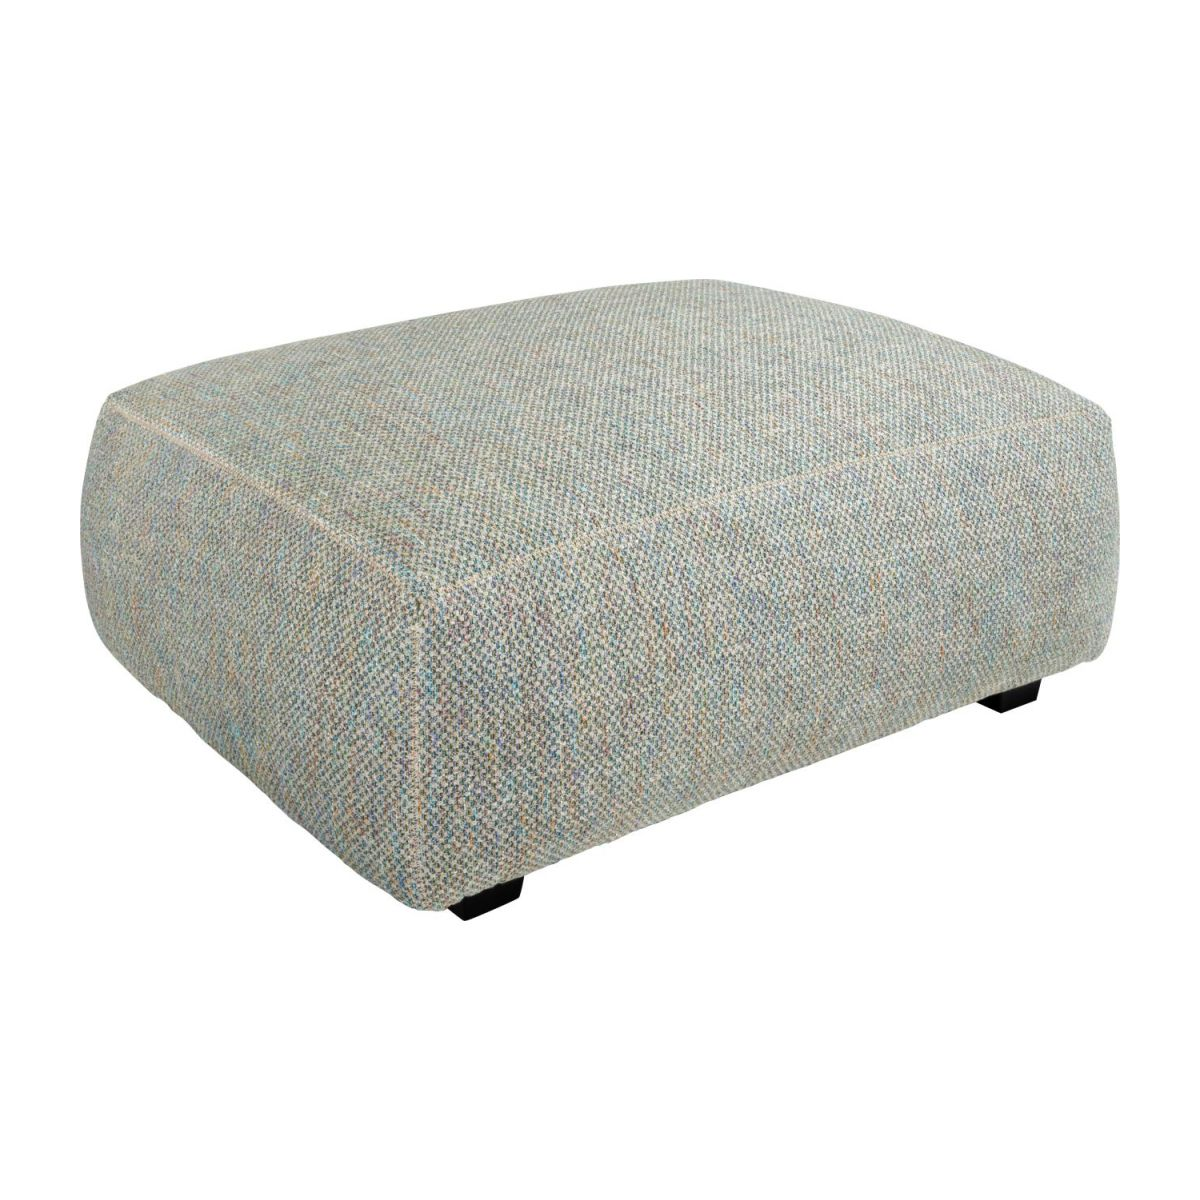 Hocker aus Stoff Bellagio organic green n°1